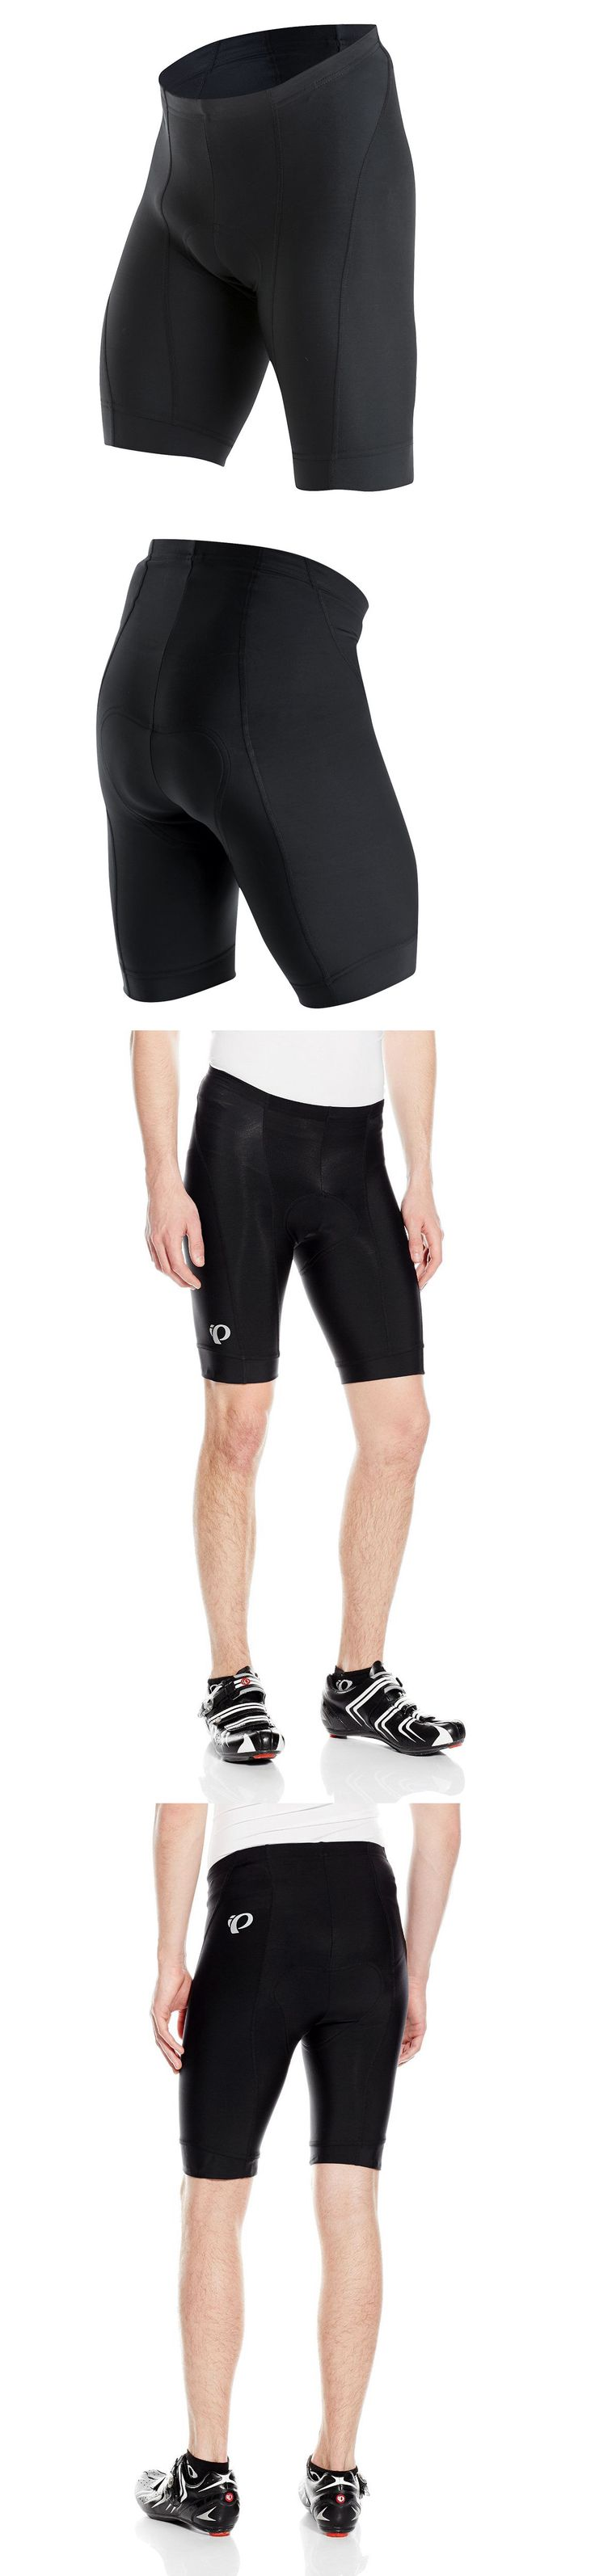 Shorts 177853: New Pearl Izumi Ride Mens Pursuit Attack Padded Cycling Short Bike Black Large L -> BUY IT NOW ONLY: $53.95 on eBay!